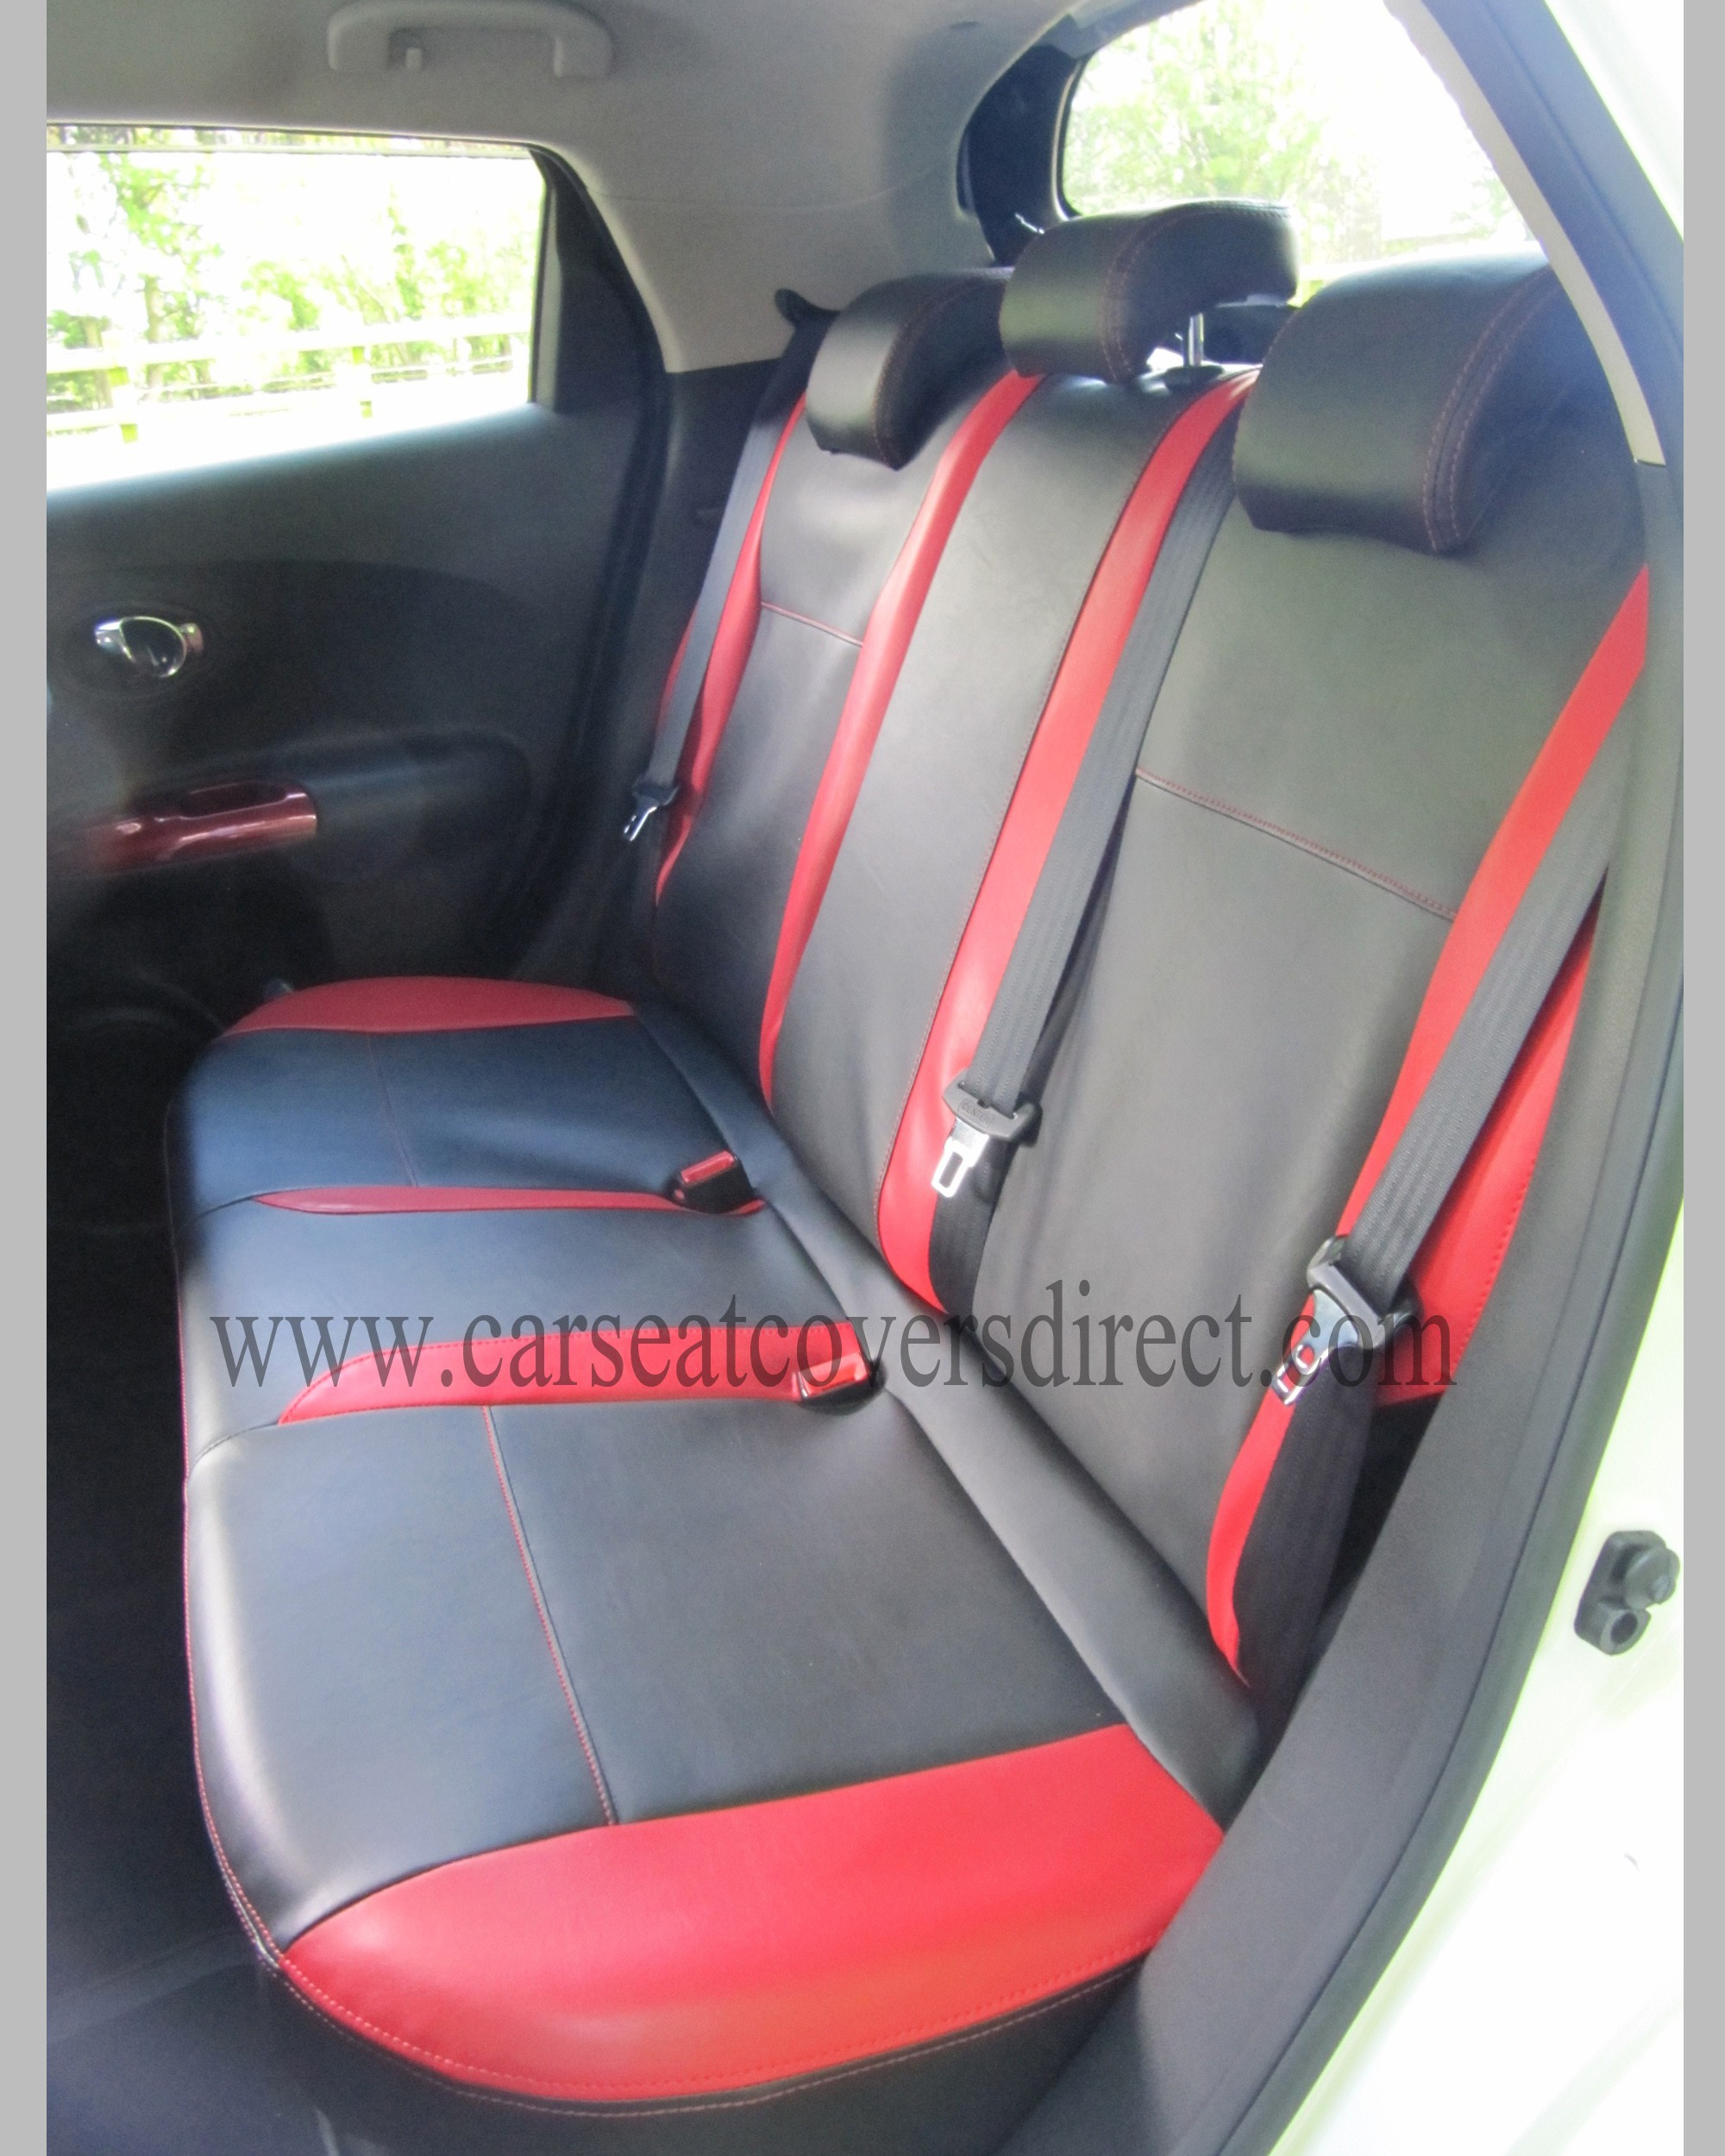 NISSAN JUKE Black Seat Covers Car Seat Covers Direct